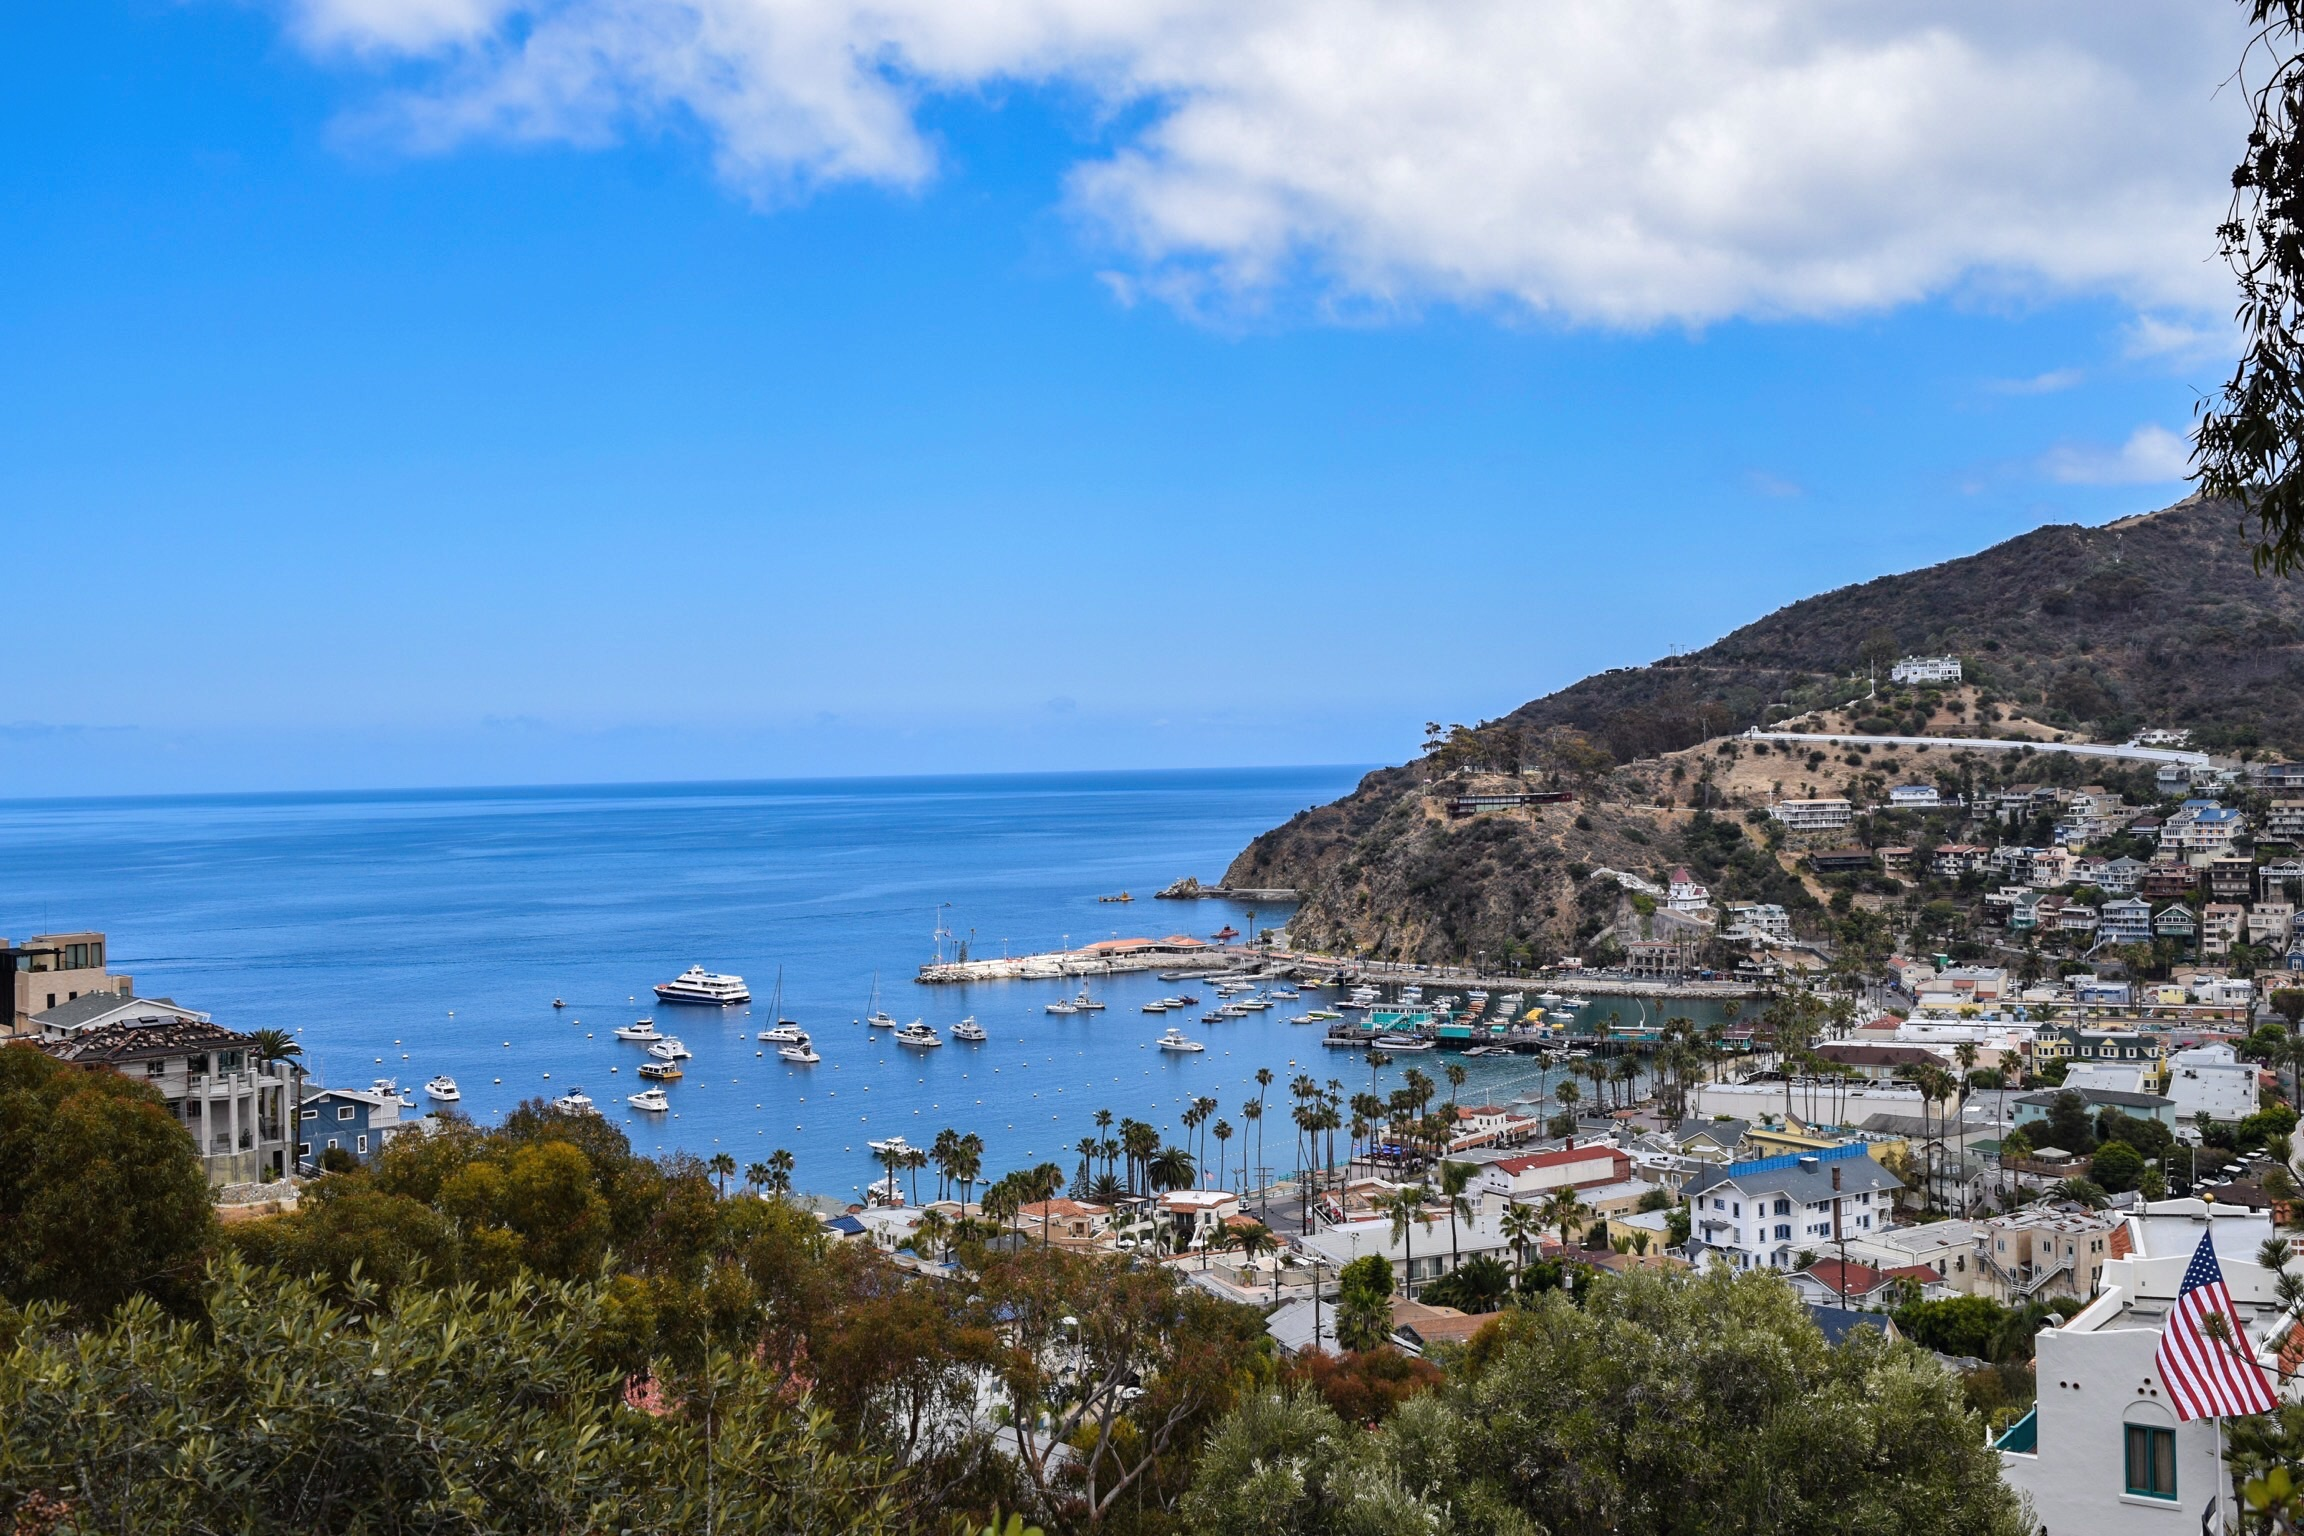 Catalina Island -Rent a bike or golf cart and see this beautiful island 22 miles off the coast.